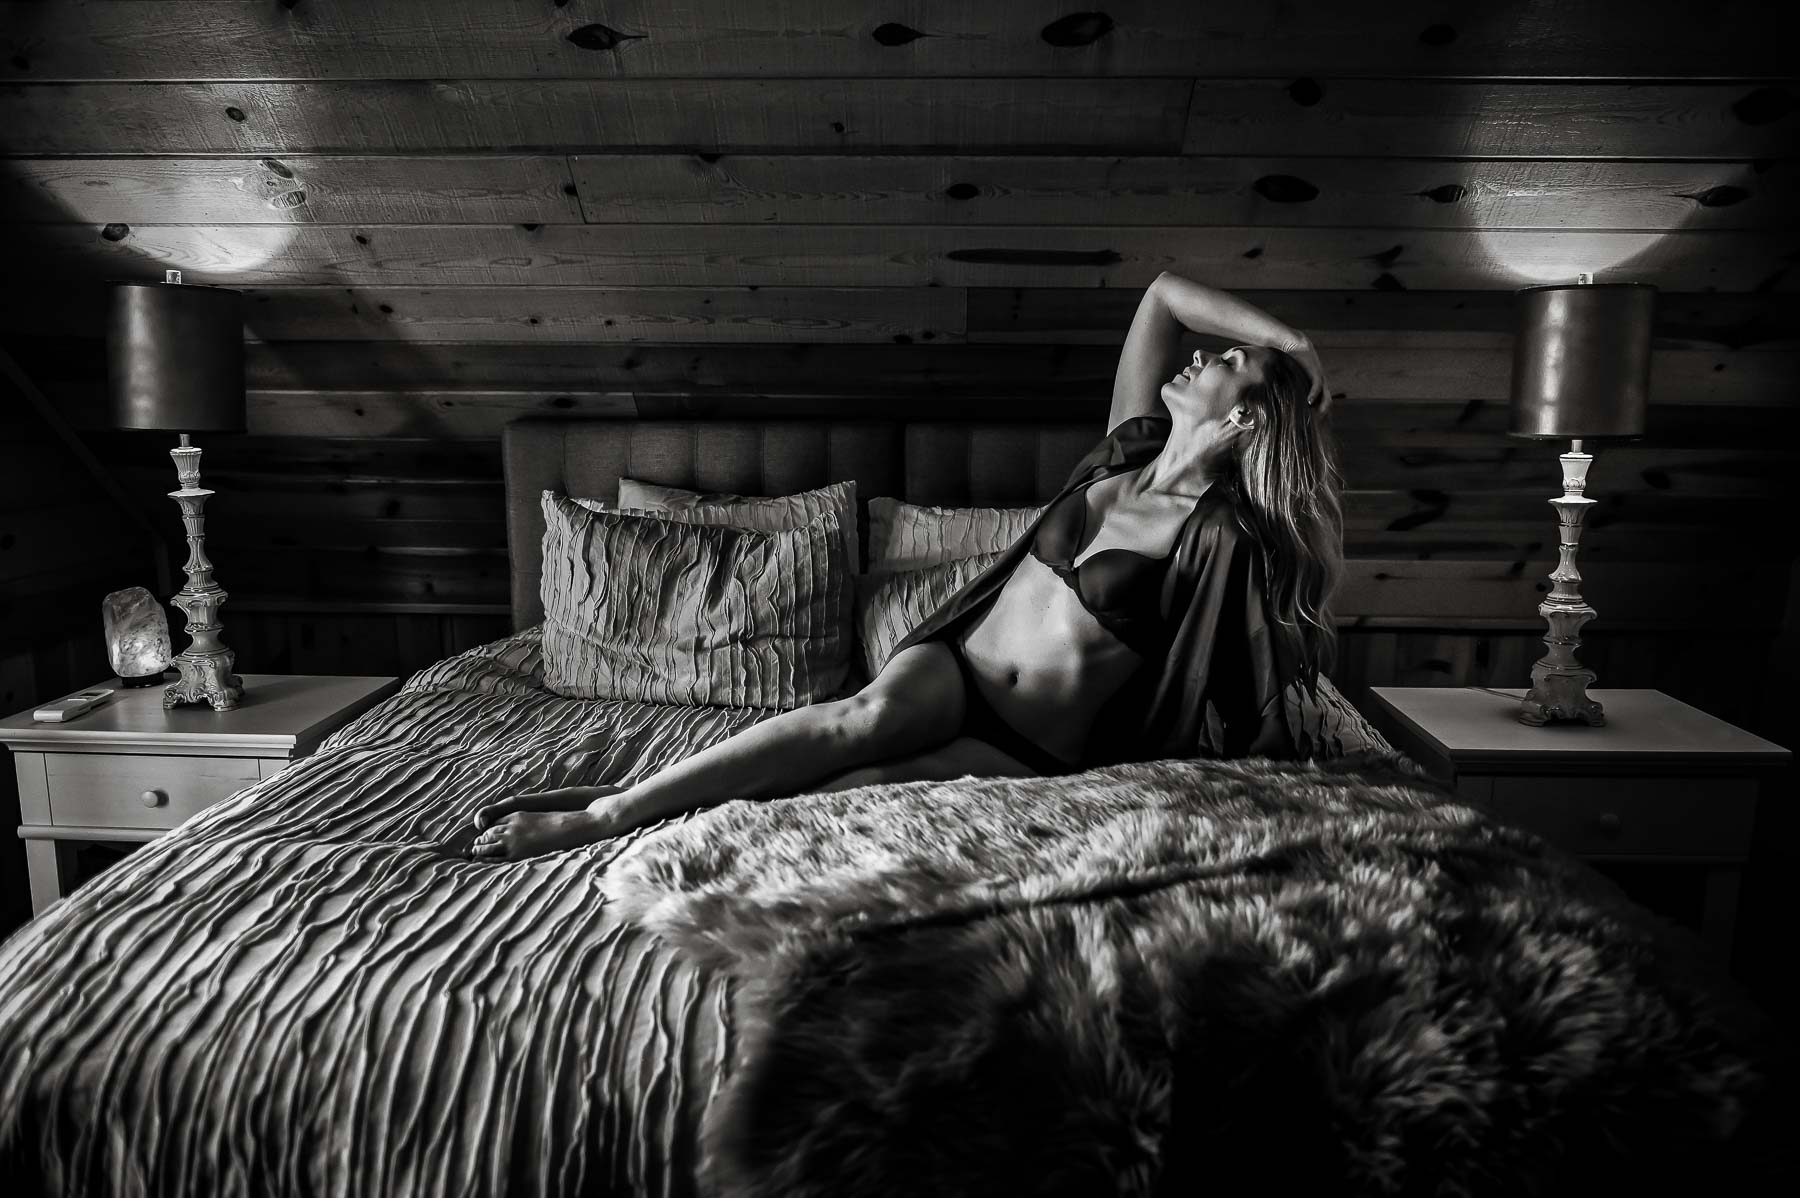 0001-KP-flagstaff-crave-cabin-boudoir-photos-DSC_2854-Edit-2-2019ther2studio